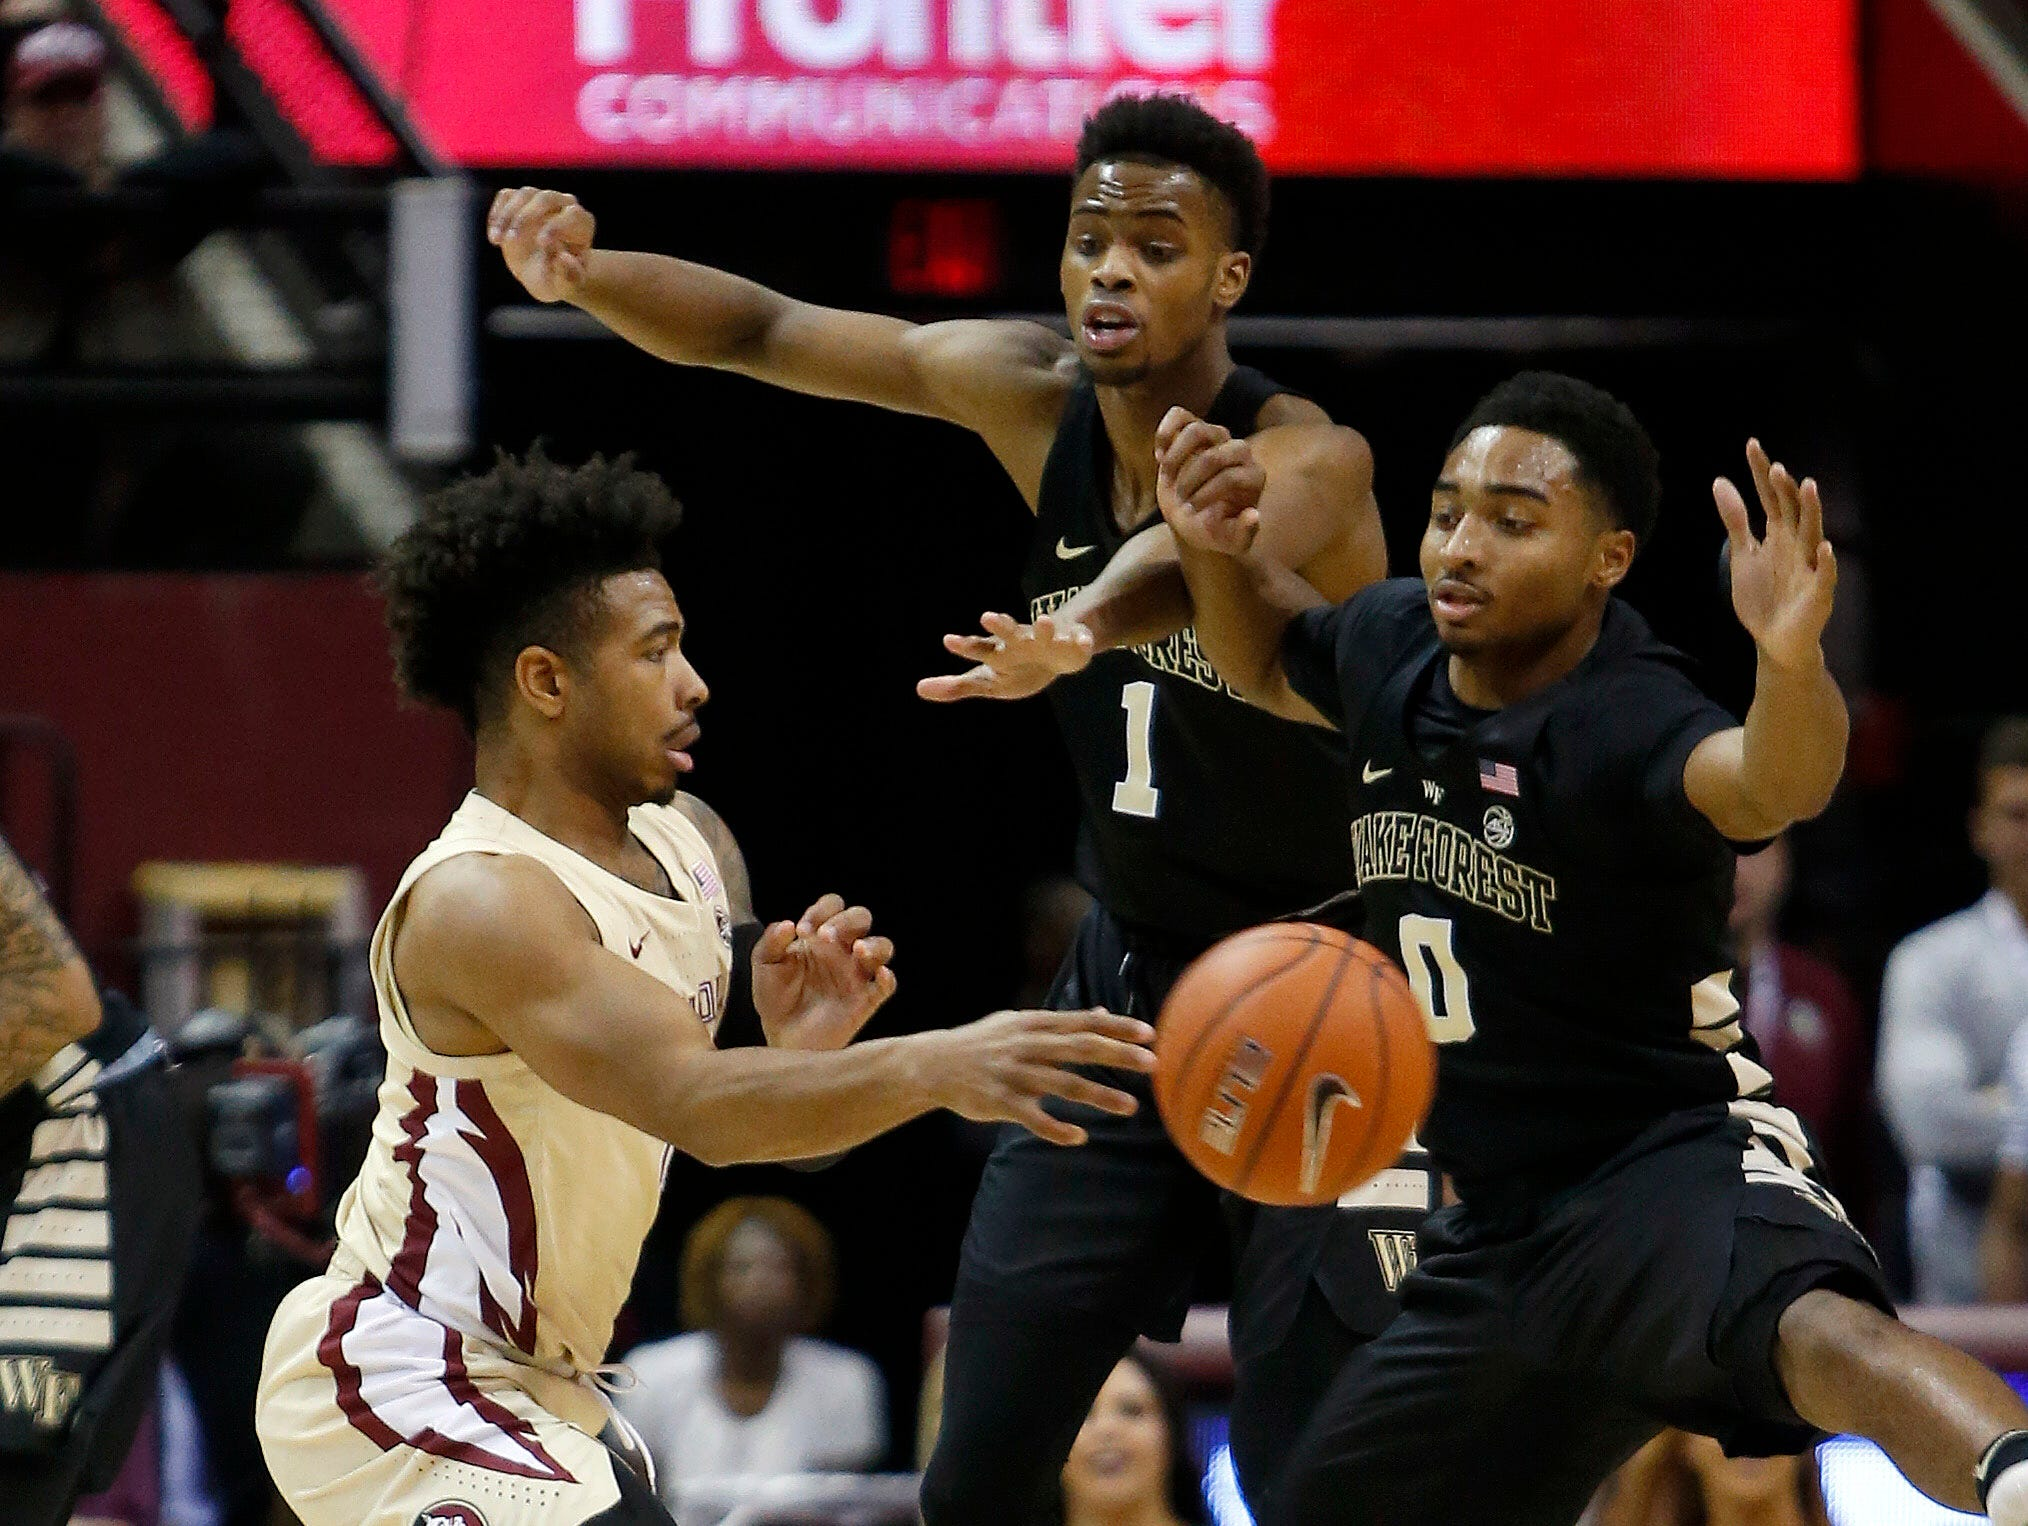 Feb 13, 2019; Tallahassee, FL, USA; Florida State Seminoles guard David Nichols (11) passes the ball around Wake Forest Demon Deacons guard Brandon Childress (0) and Demon Deacons forward Isaiah Mucius (1) during the first half at Donald L. Tucker Center. Mandatory Credit: Glenn Beil-USA TODAY Sports